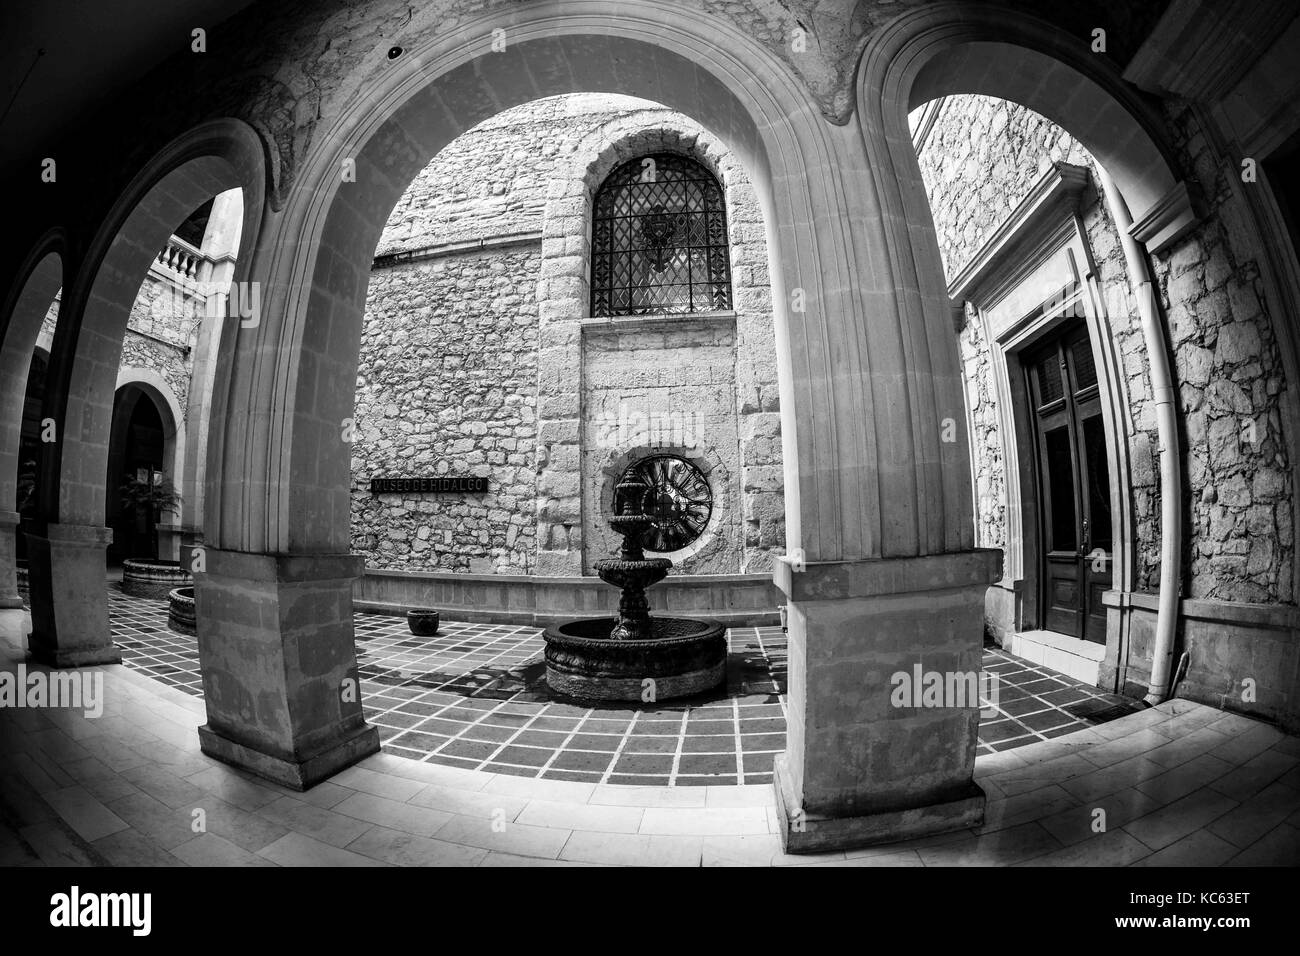 The Government Palace of the state of Chihuahua Mexico  Located in the Historic Center of the City of Chihuahua, - Stock Image